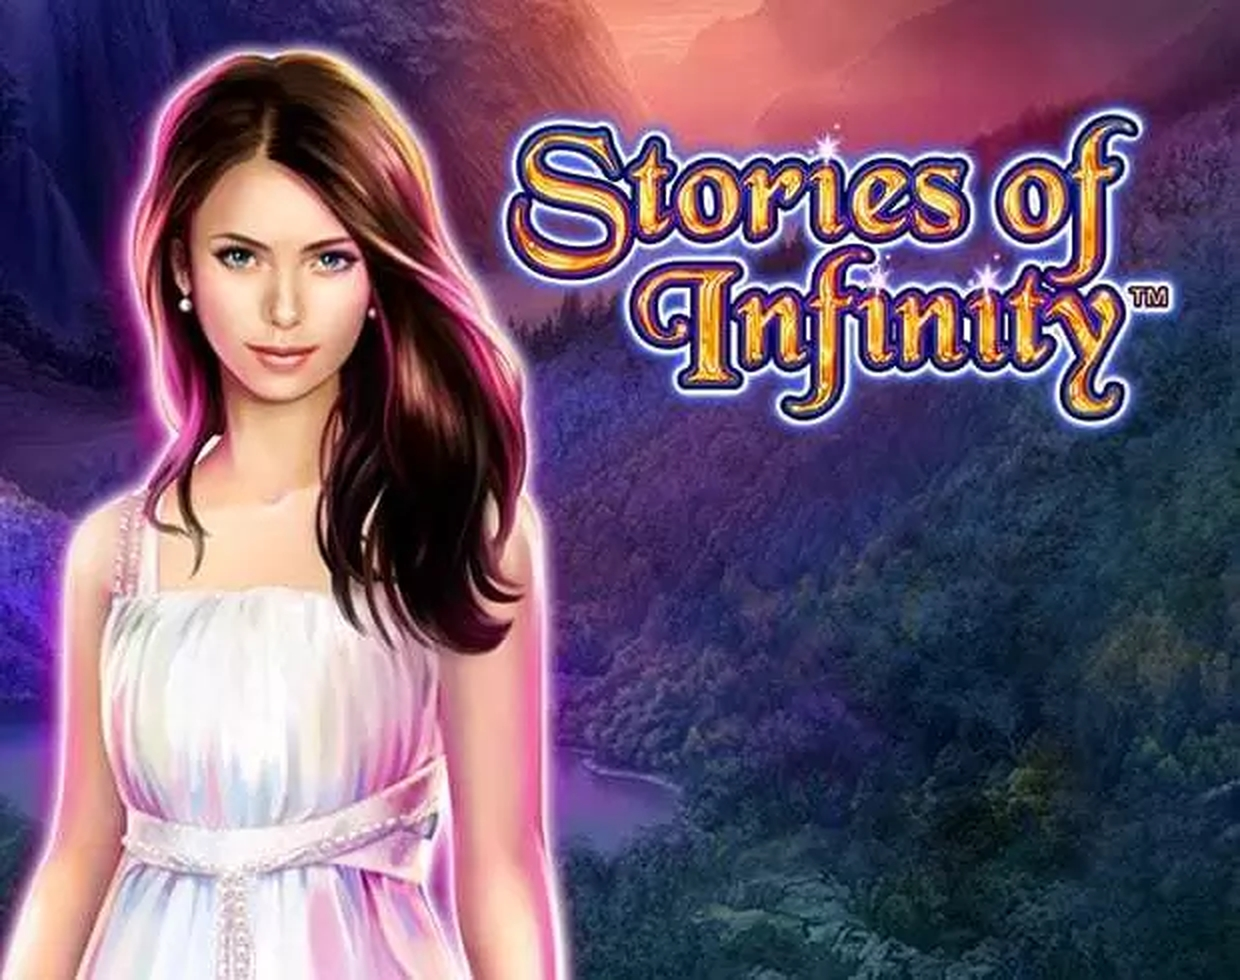 The Stories of Infinity Online Slot Demo Game by Greentube